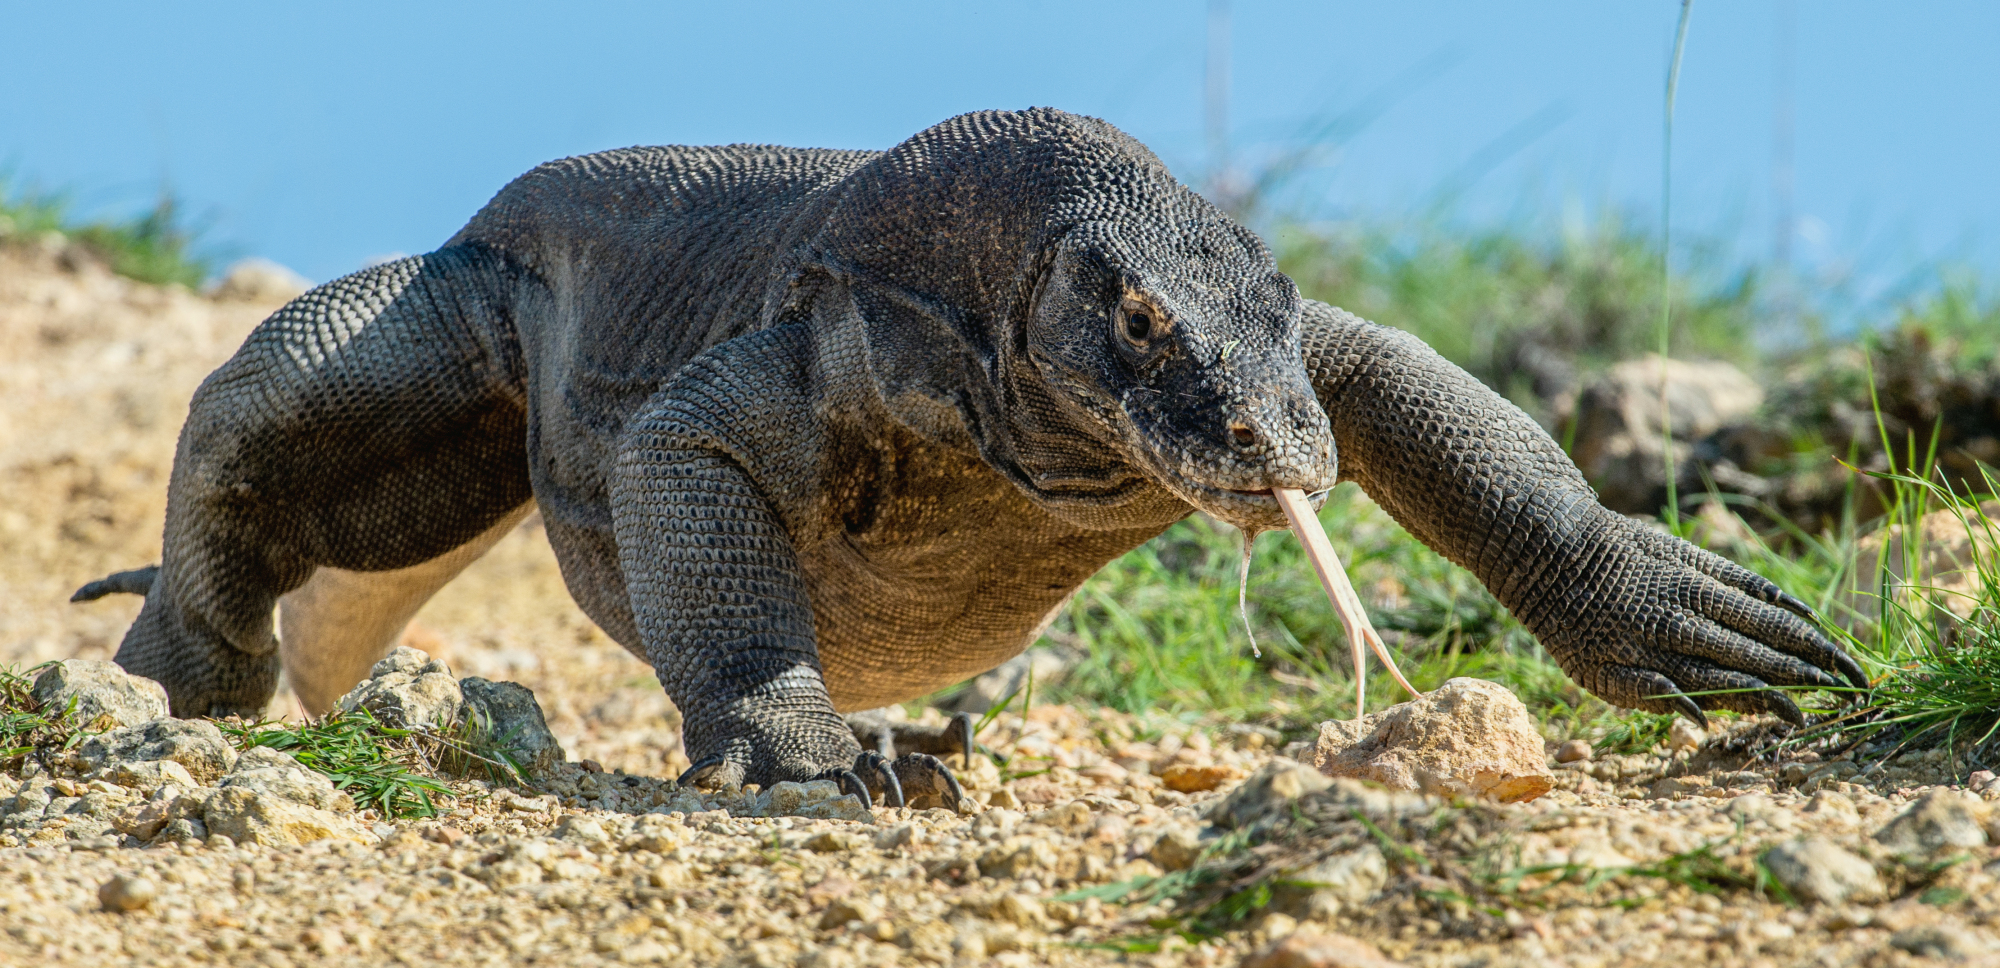 If fewer people get a chance to see Komodo island's dragons, they will have a chance to thrive. | GETTY IMAGES